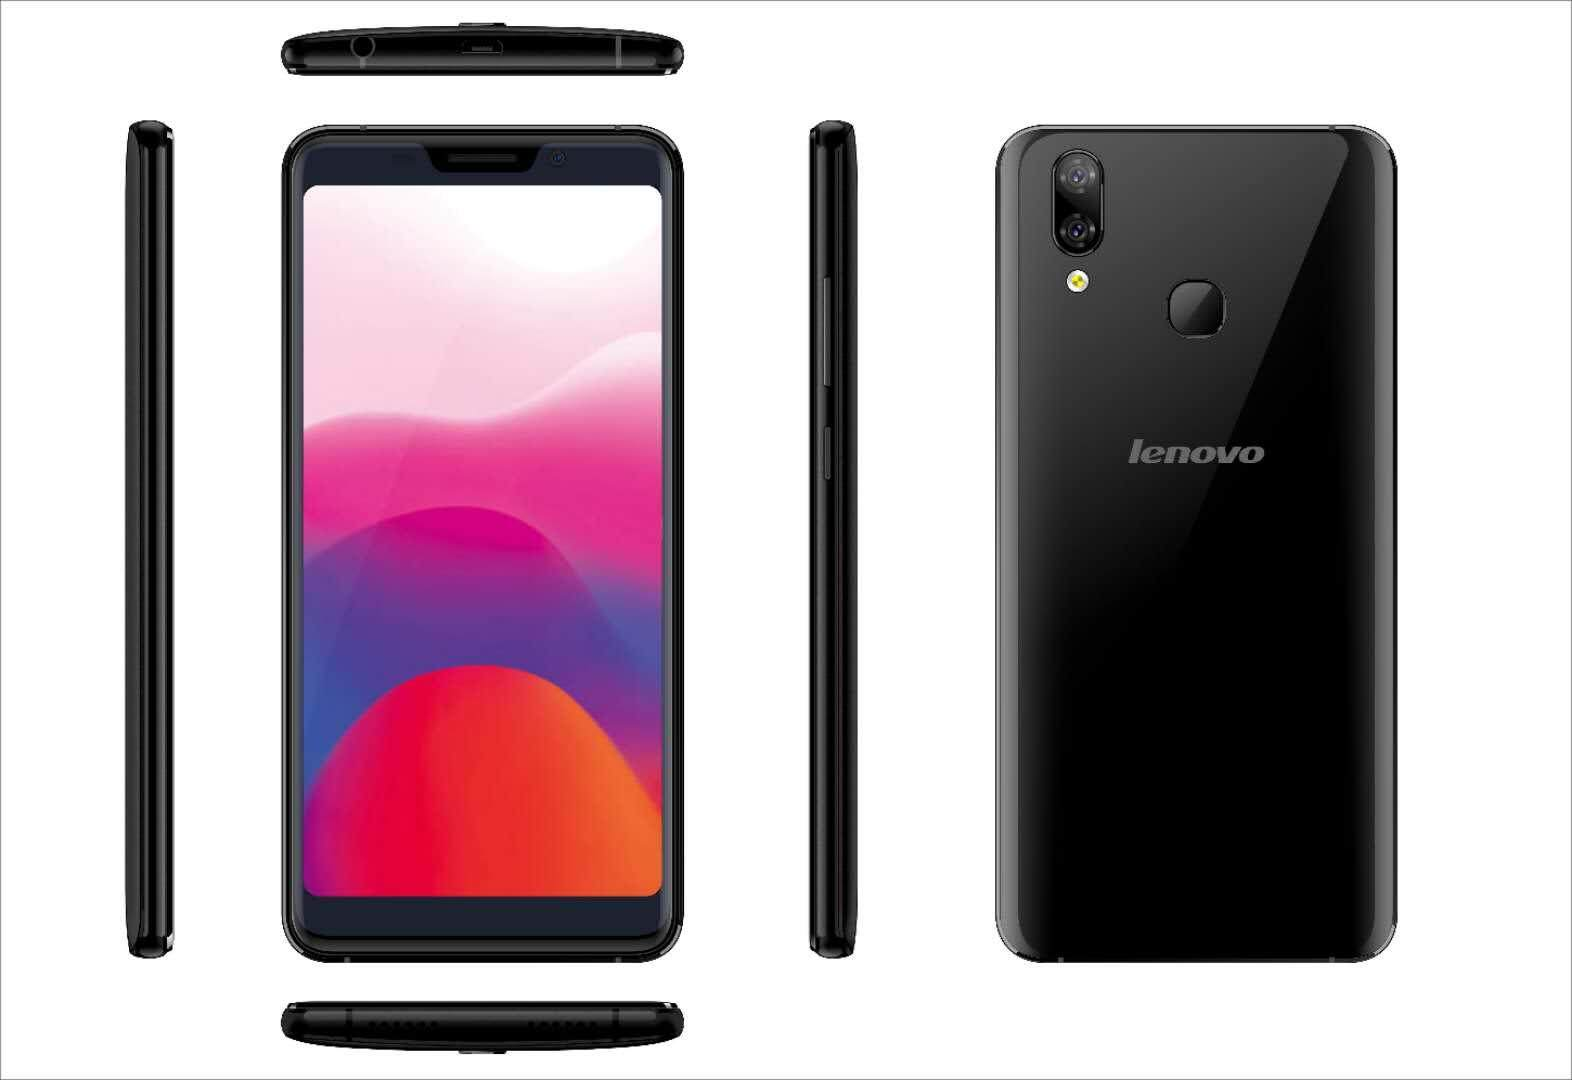 Shop Lenovo Mobiles Tablets Deals Lazada Malaysia Touchscreen A2020 Vibe C Ts X21 55 Full Hd Display Face Unlock New Arrival